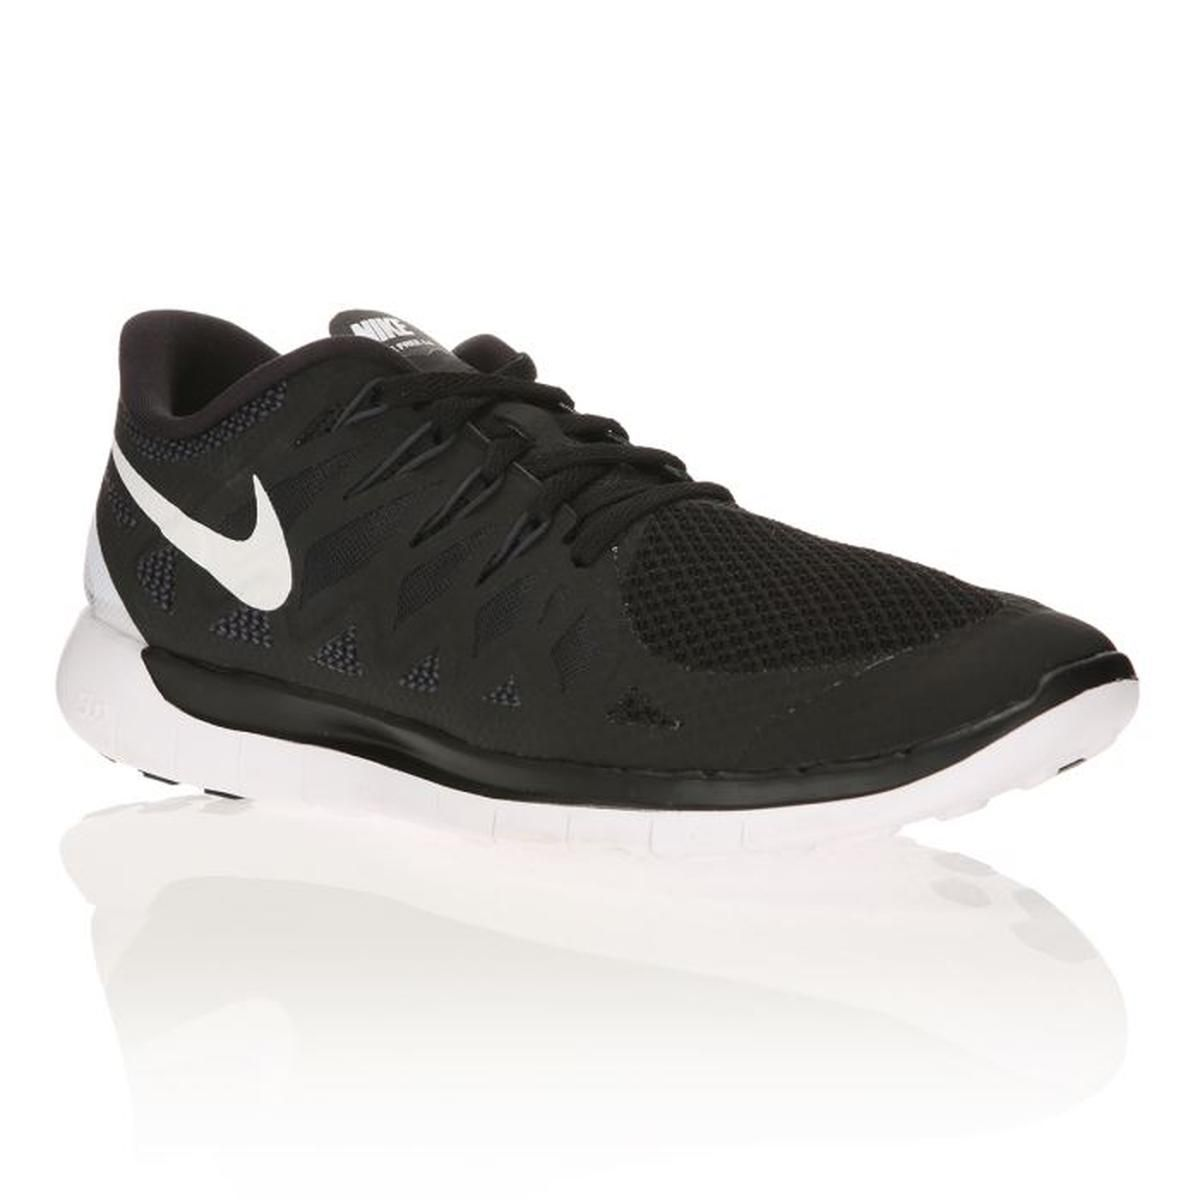 nike free nike pas cher homme,NIKE Chaussures de running